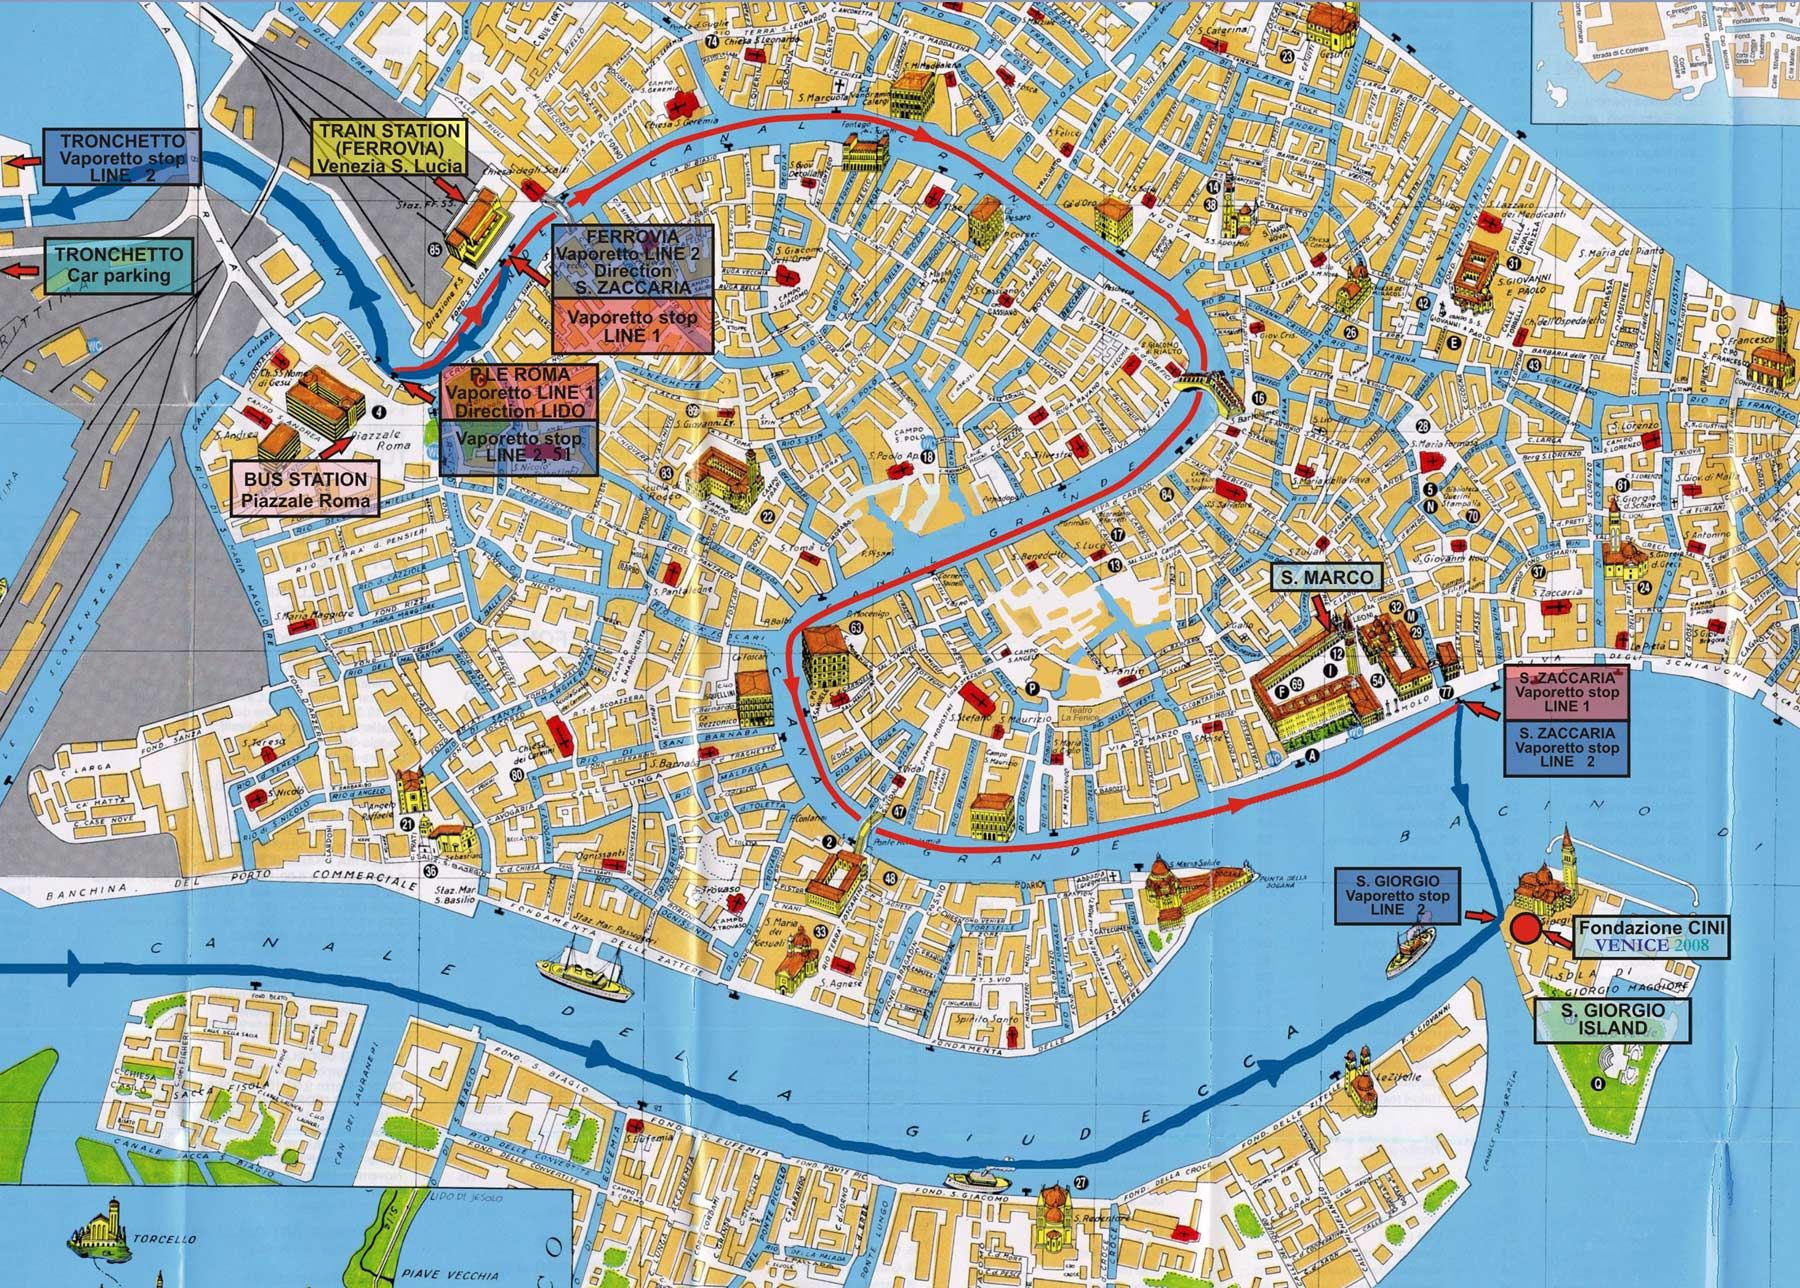 City Map Venice (venezia) | Diverse in 2019 | Venice map ... City Map Of Venice Italy on city of beijing china map, city of geneva switzerland map, city of buenos aires argentina map, city of havana cuba map, venezia italy map, city of izmir turkey map, city of venice florida map, city of marseille france map, city of budapest hungary map, city of doha qatar map, city of manila philippines map, city of bangkok thailand map, city of dubrovnik croatia map, city of nassau bahamas map, city of kiev ukraine map, city of germany map, city of edmonton canada map, city of reykjavik iceland map, city of zurich switzerland map, city of spain map,